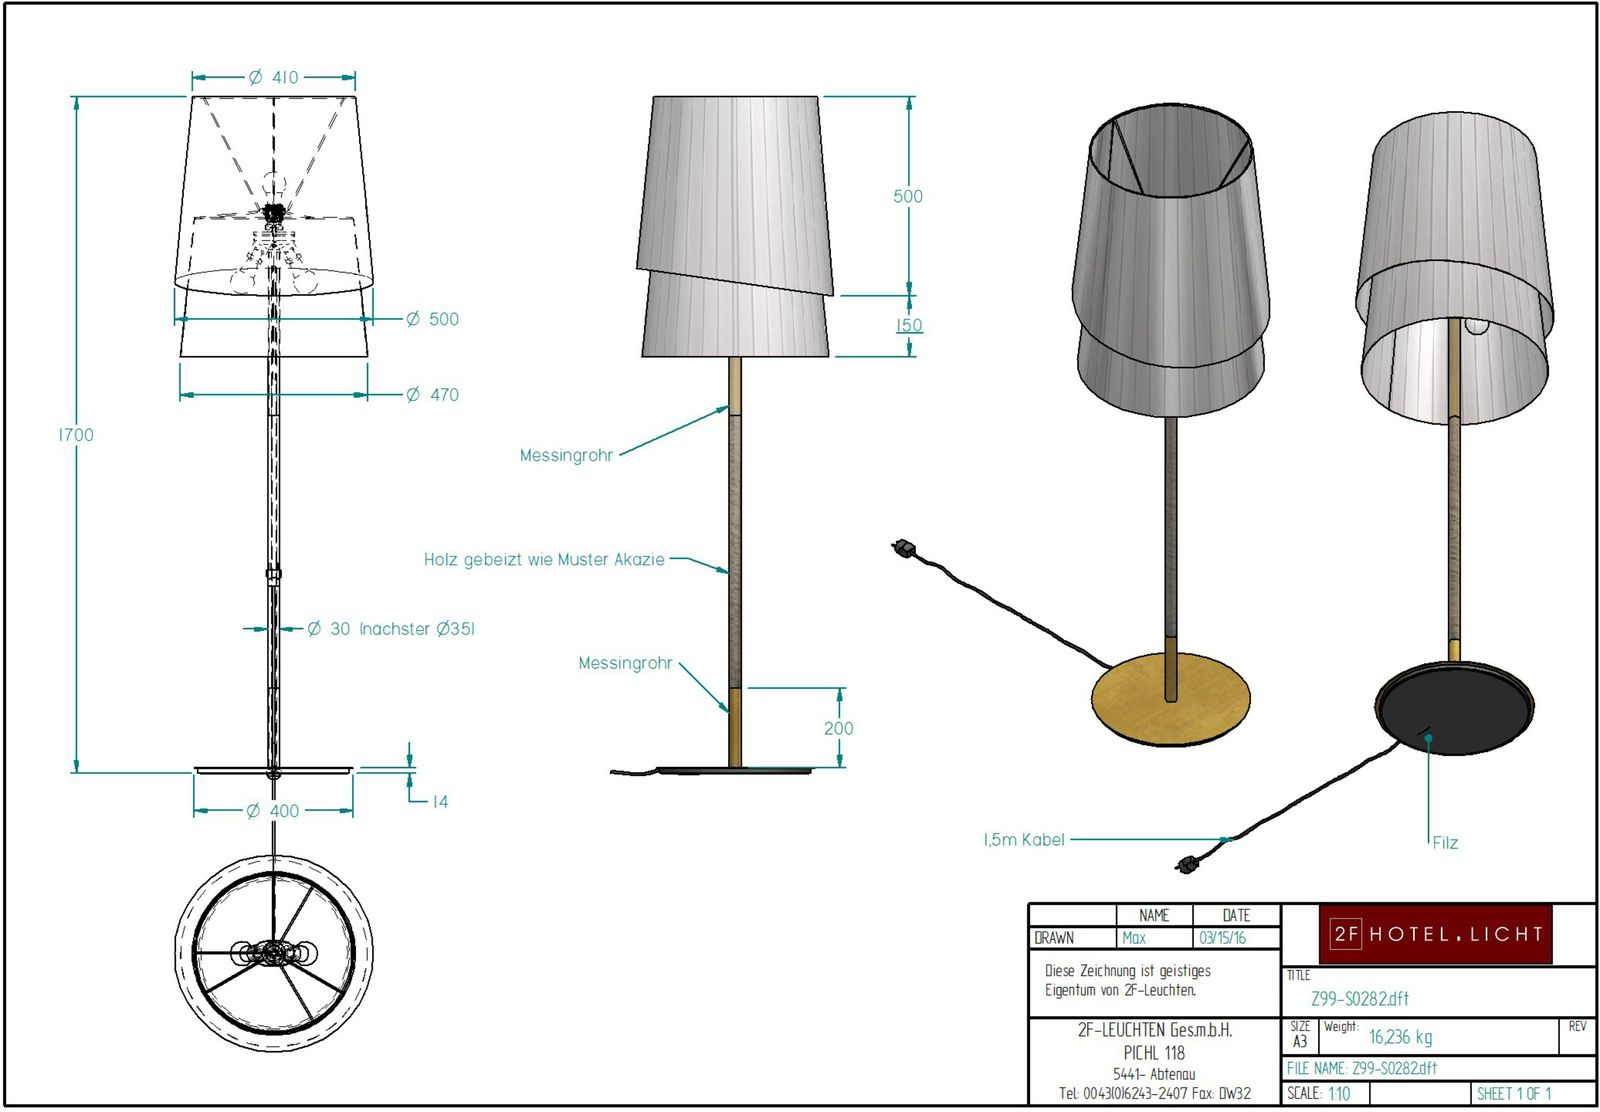 floor lamp, dimensions: L:500mm, W:500mm, H:1700mm, surface metal: M47, brass antique burnished, techn. Data: 3xE27, 70W 230V, cable color: black